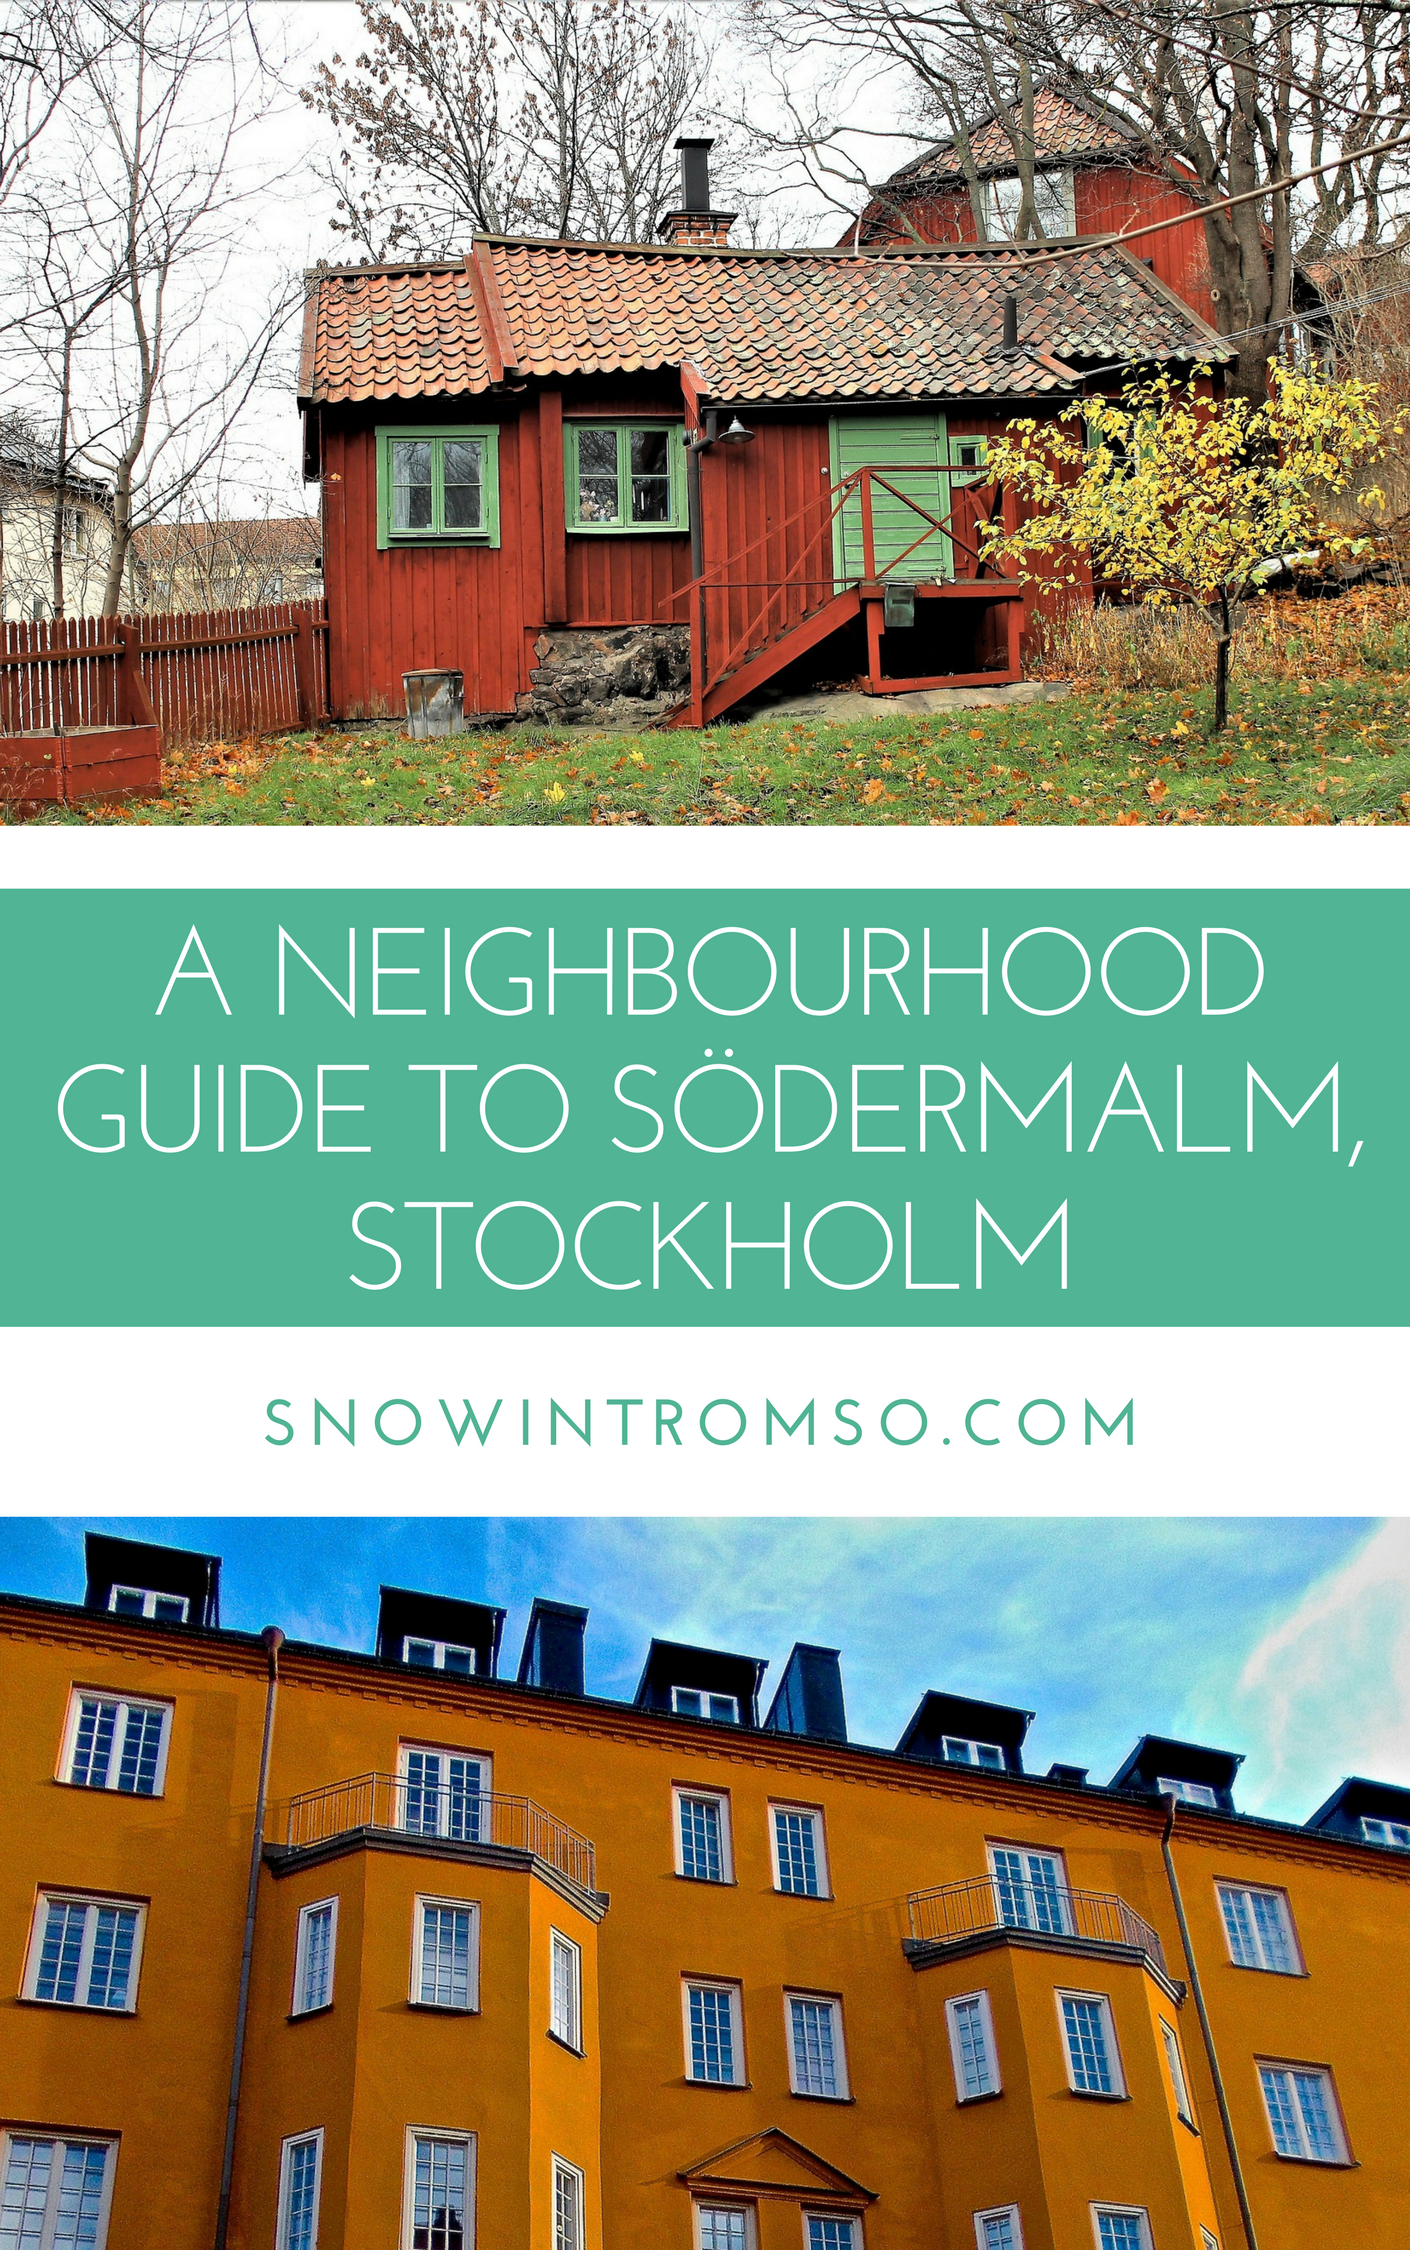 Click through to learn more about Stockholm's hippest neighbourhood Södermalm!